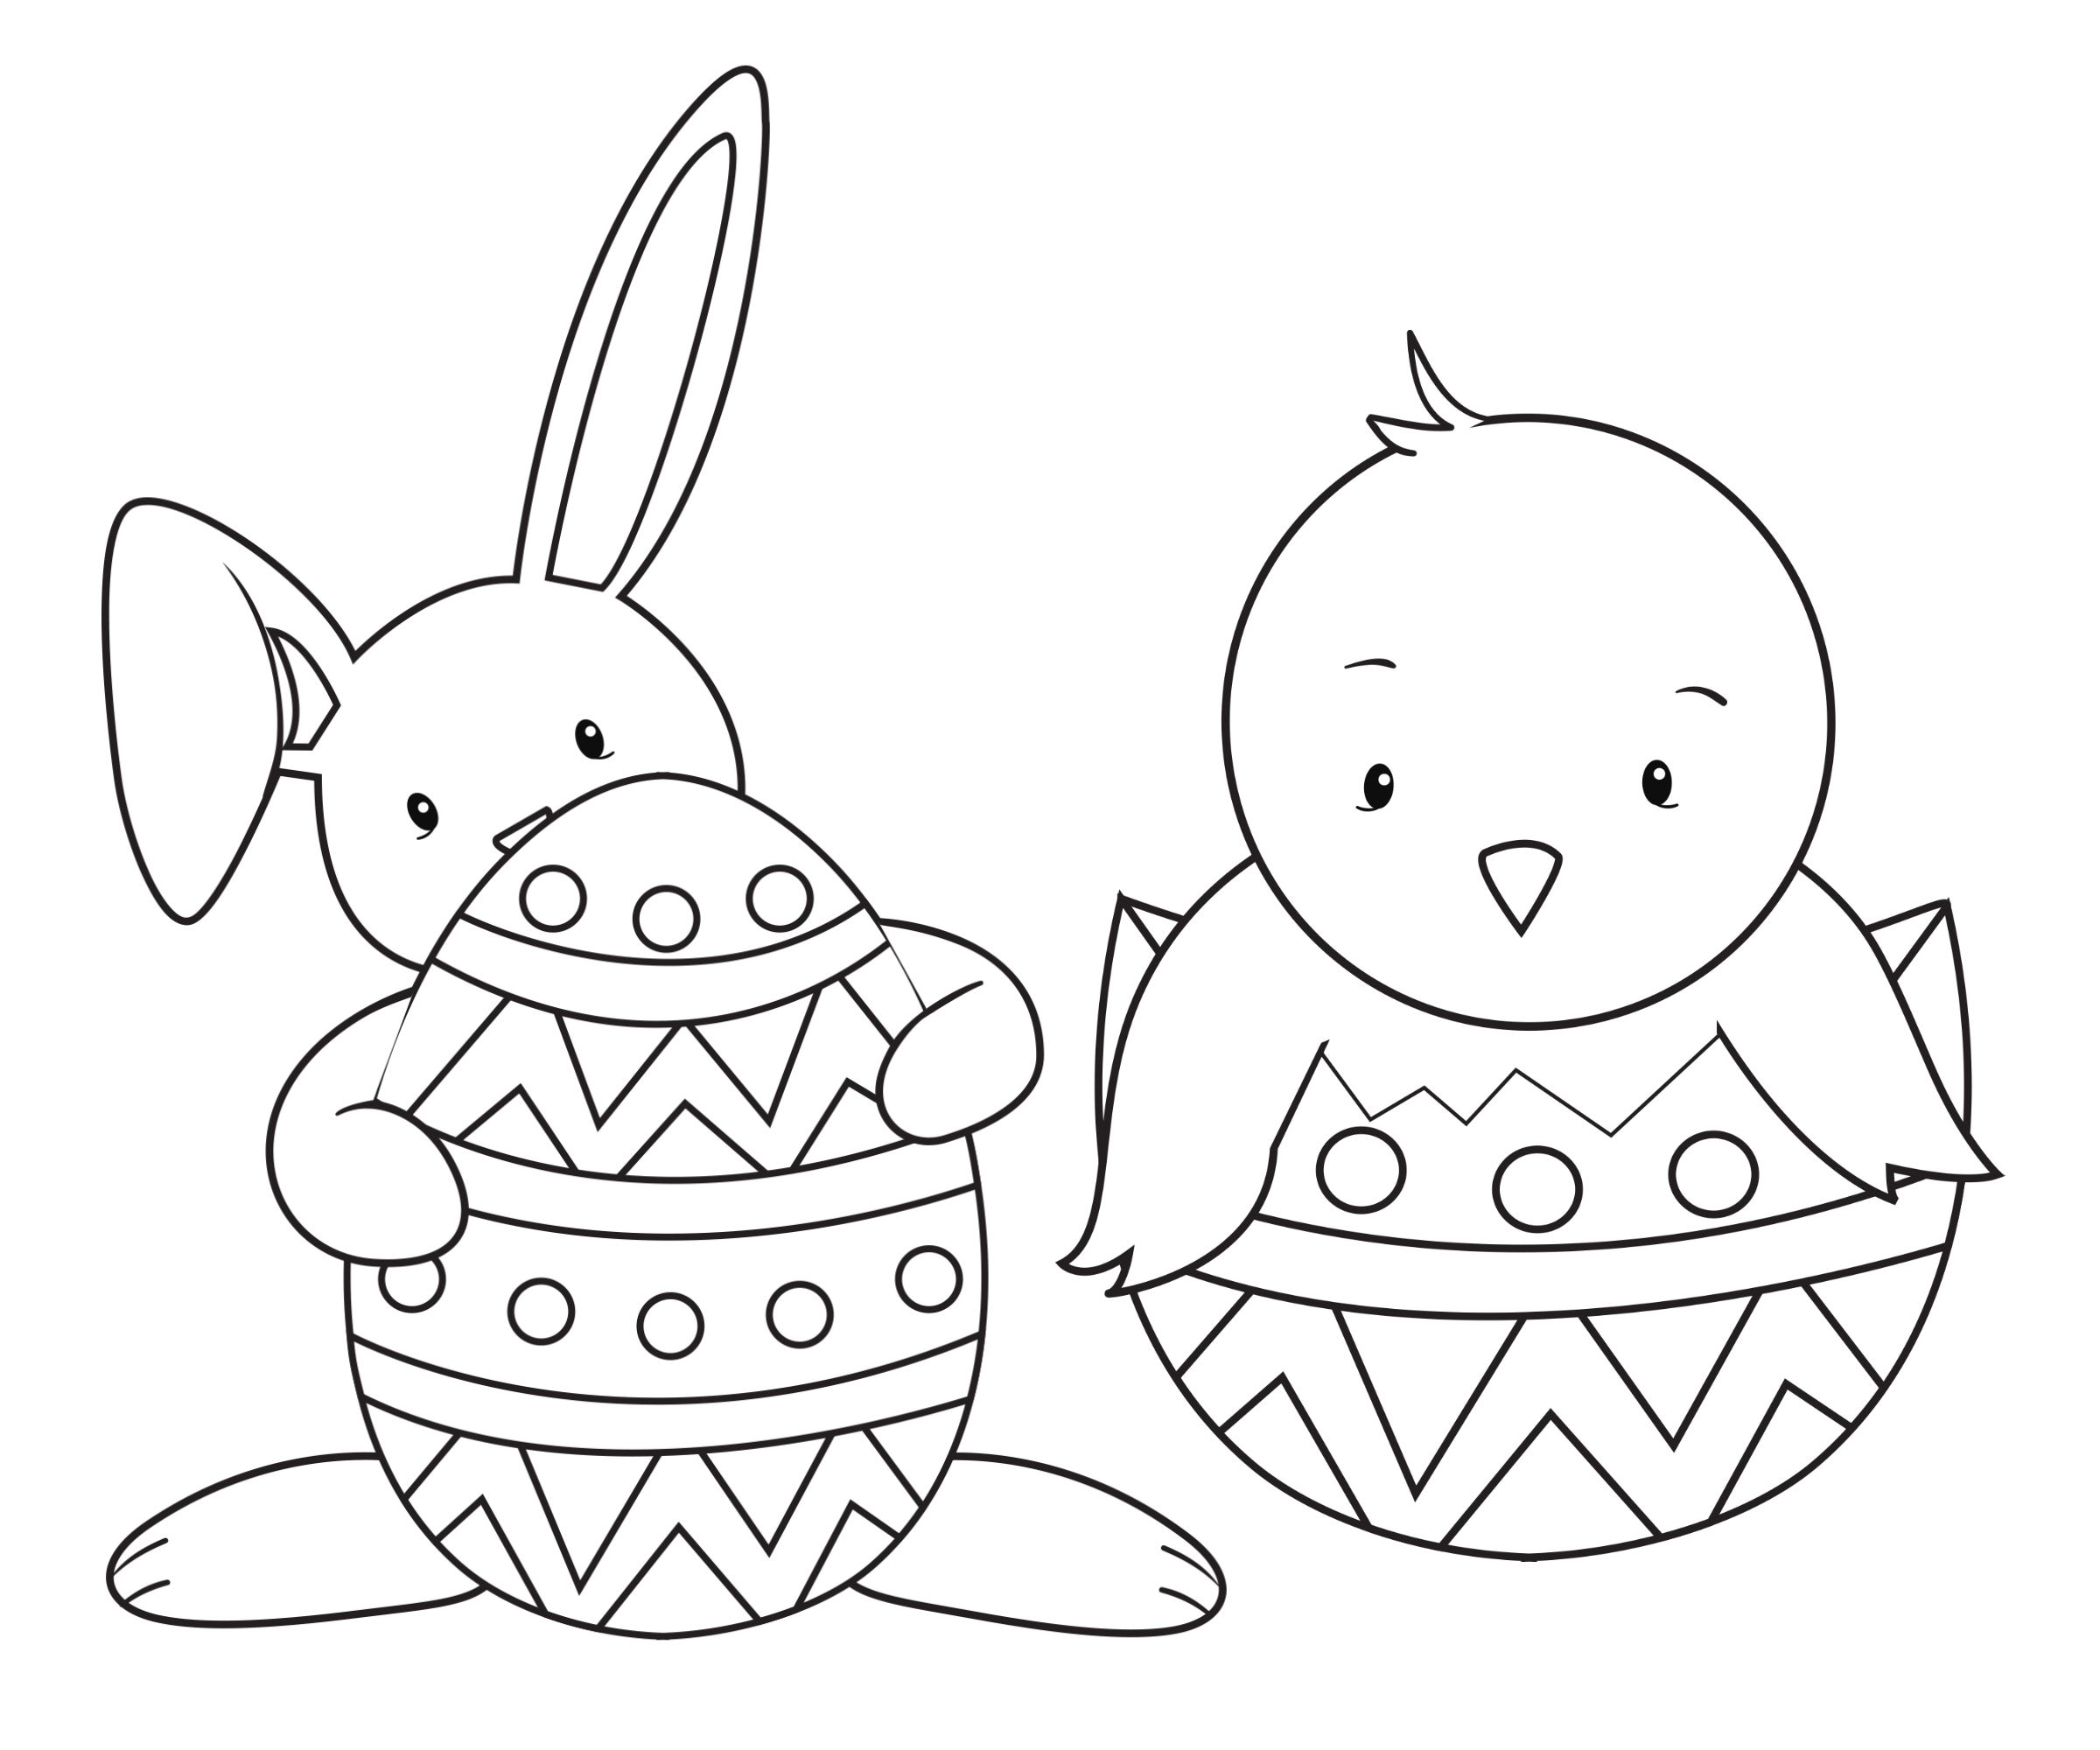 Easter Coloring Pages For Kids Bunny Coloring Pages Easter Coloring Pages Printable Easter Bunny Colouring